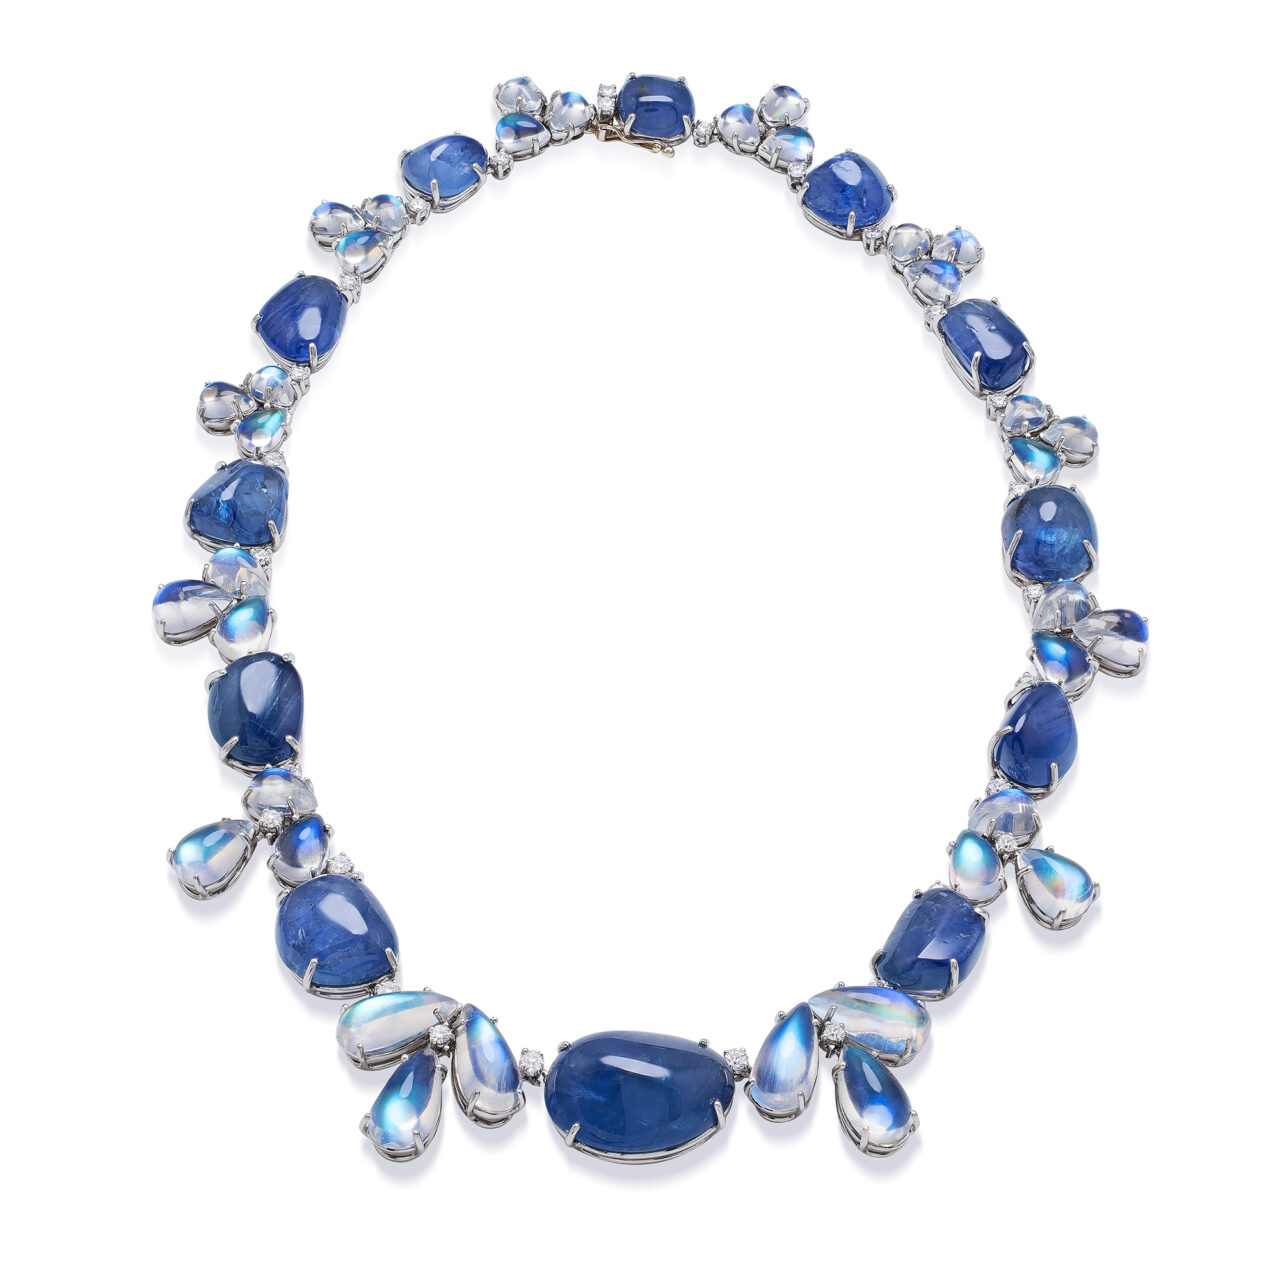 Platinum Necklace with Moonstones, Sapphires and Diamonds